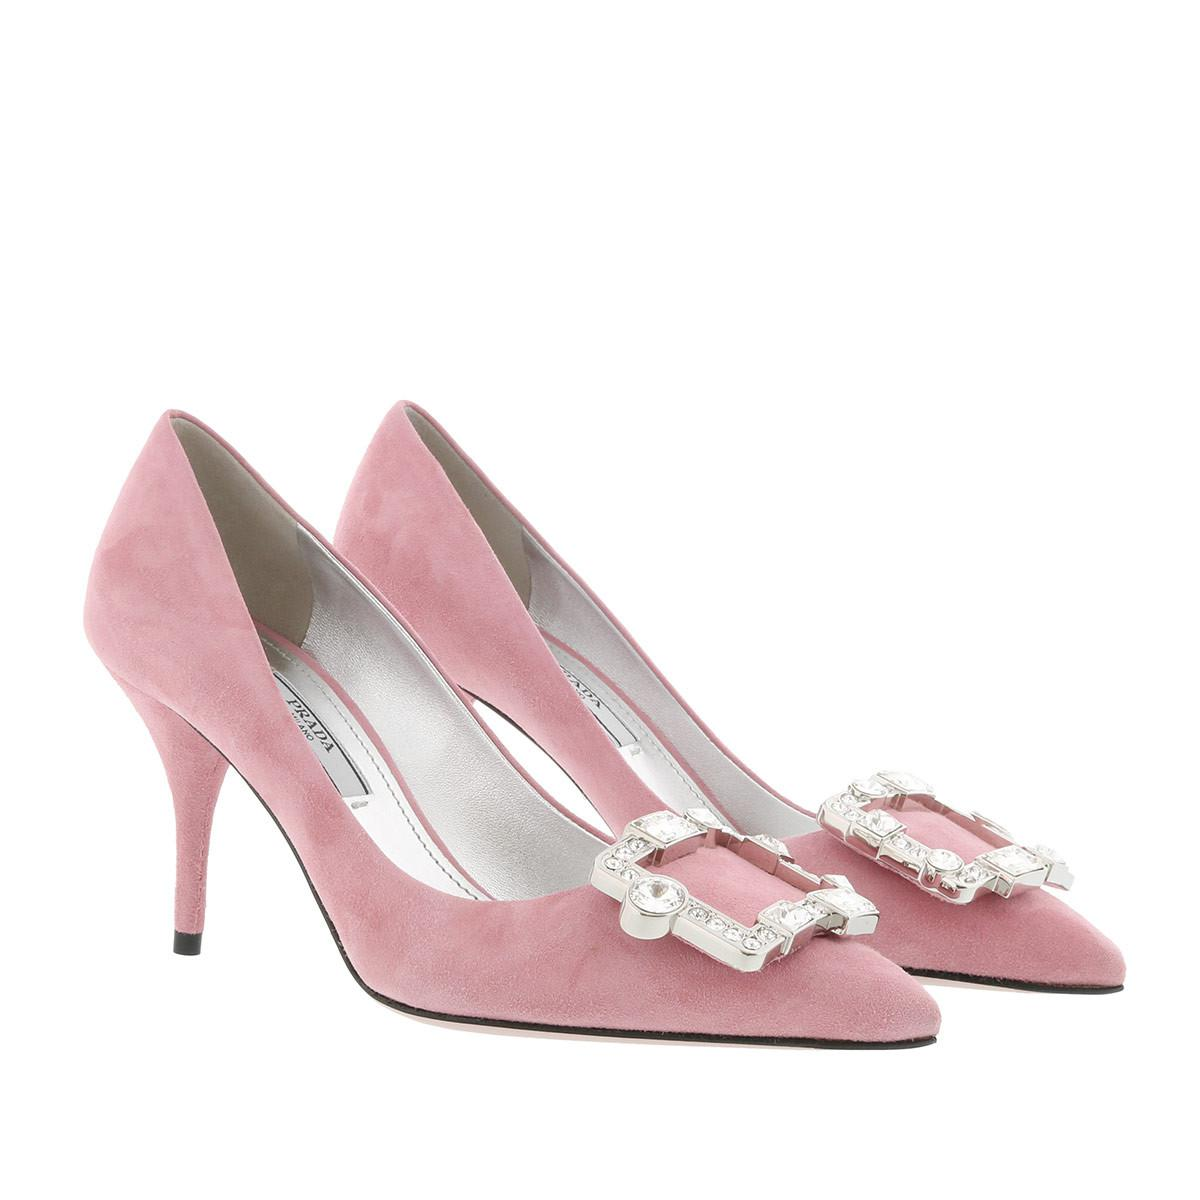 Best Cheap Price Pumps - Crystal Buckle Mules Leather Loto - rose - Pumps for ladies Prada Nicekicks Online Cheap Sale Good Selling How Much Outlet Countdown Package WitrOwh